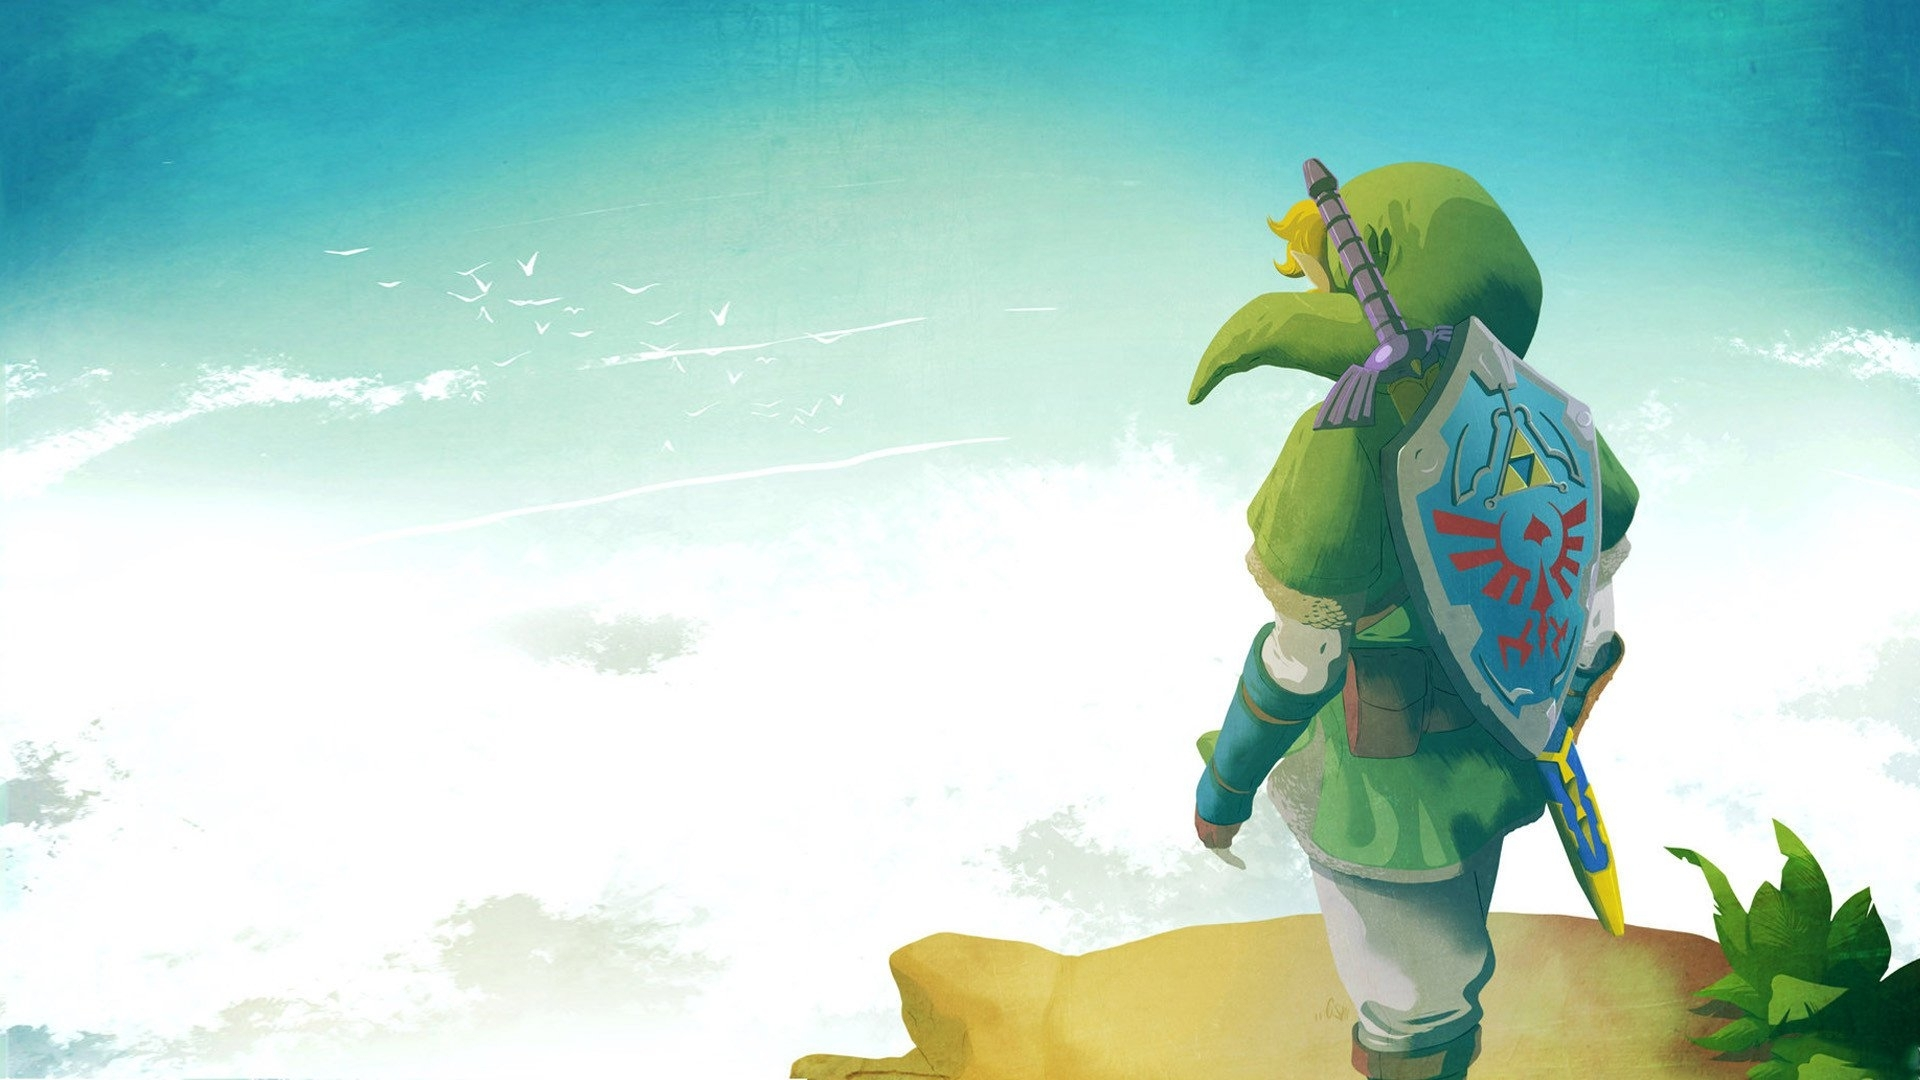 afternoon, here are 65 legend of zelda desktop wallpapers | kotaku